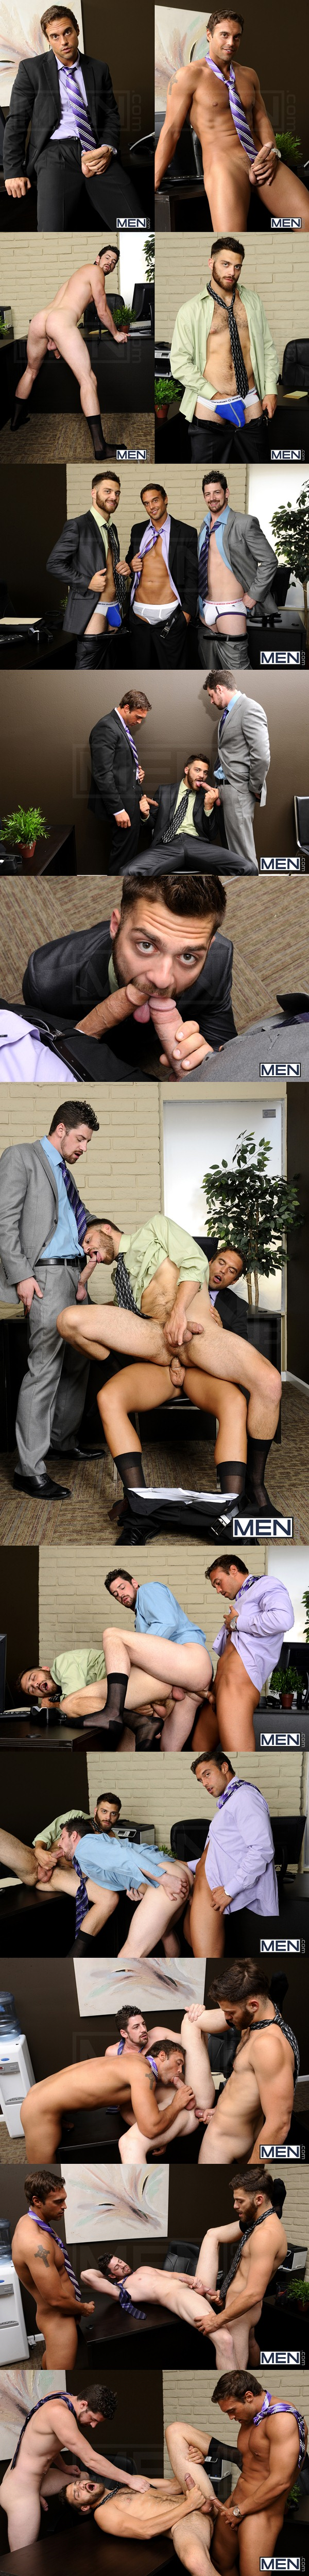 Threesome sandwich fucking of Rocco Reed Fucks Andrew Stark and Tommy Defendi in The Promotion at Thegayoffice 01